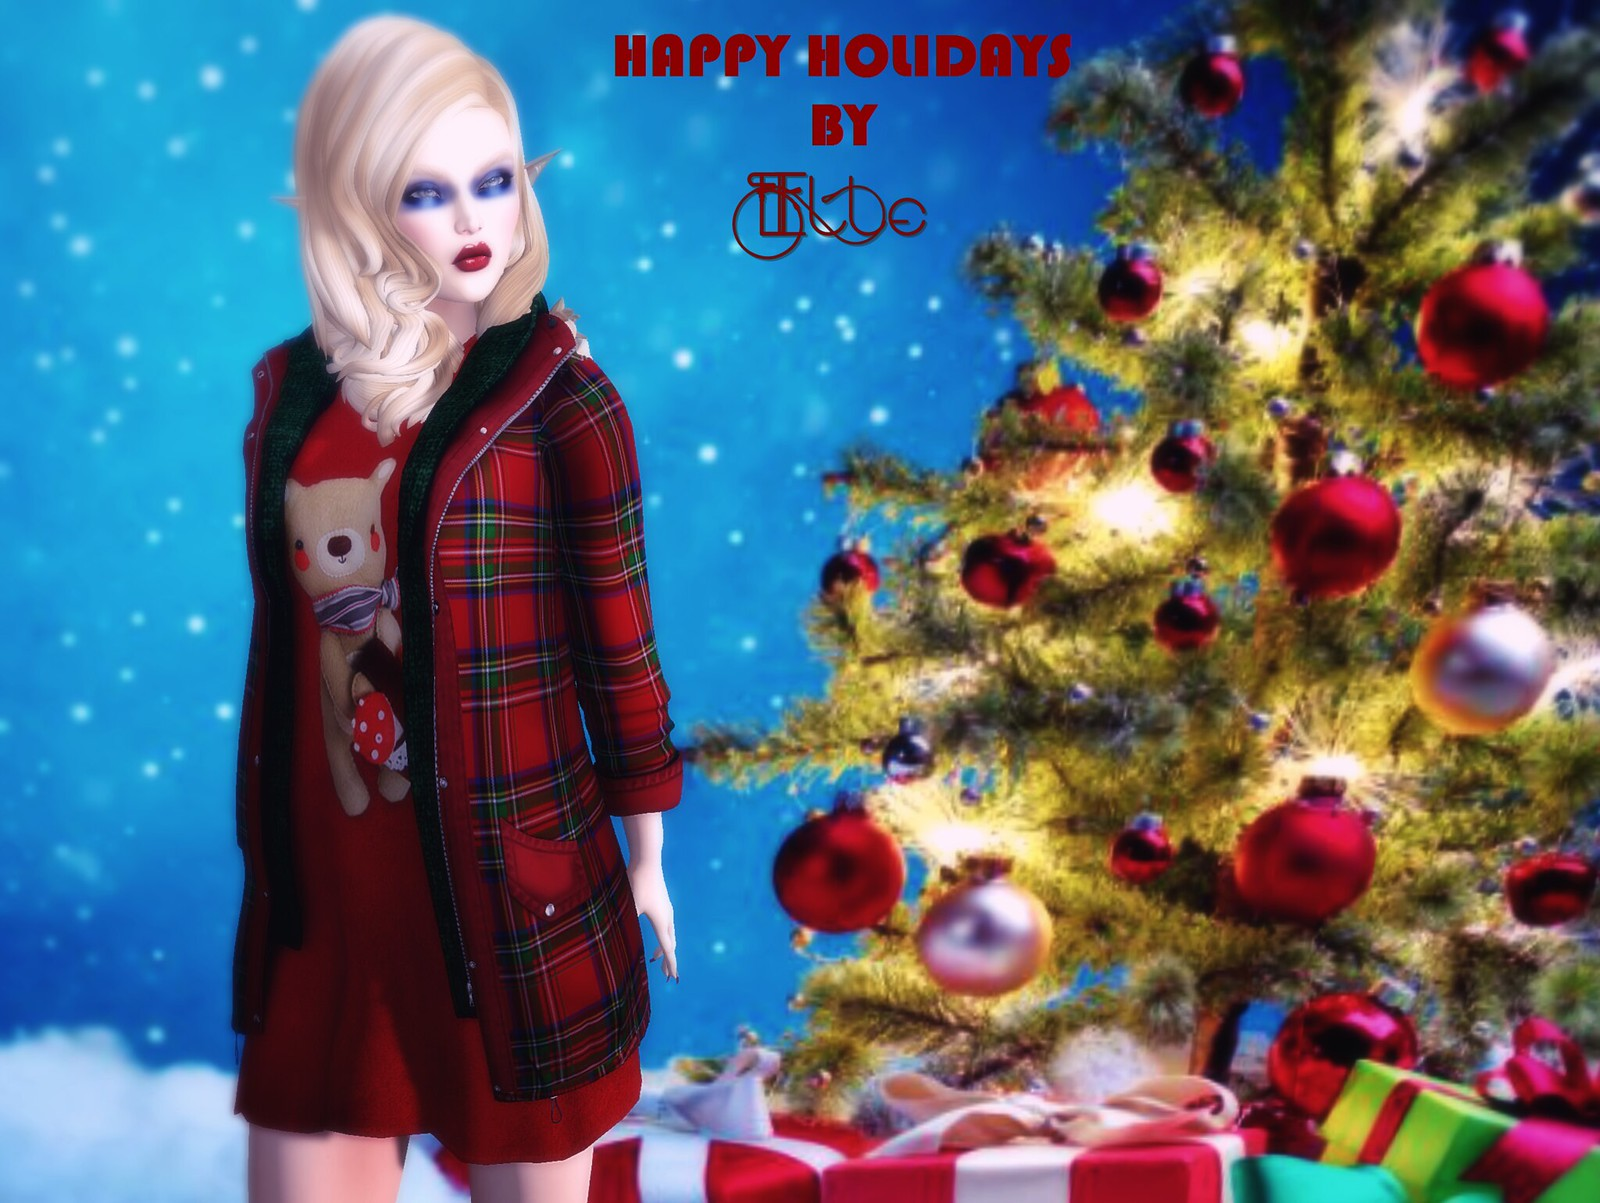 Happy Holidays by Elle